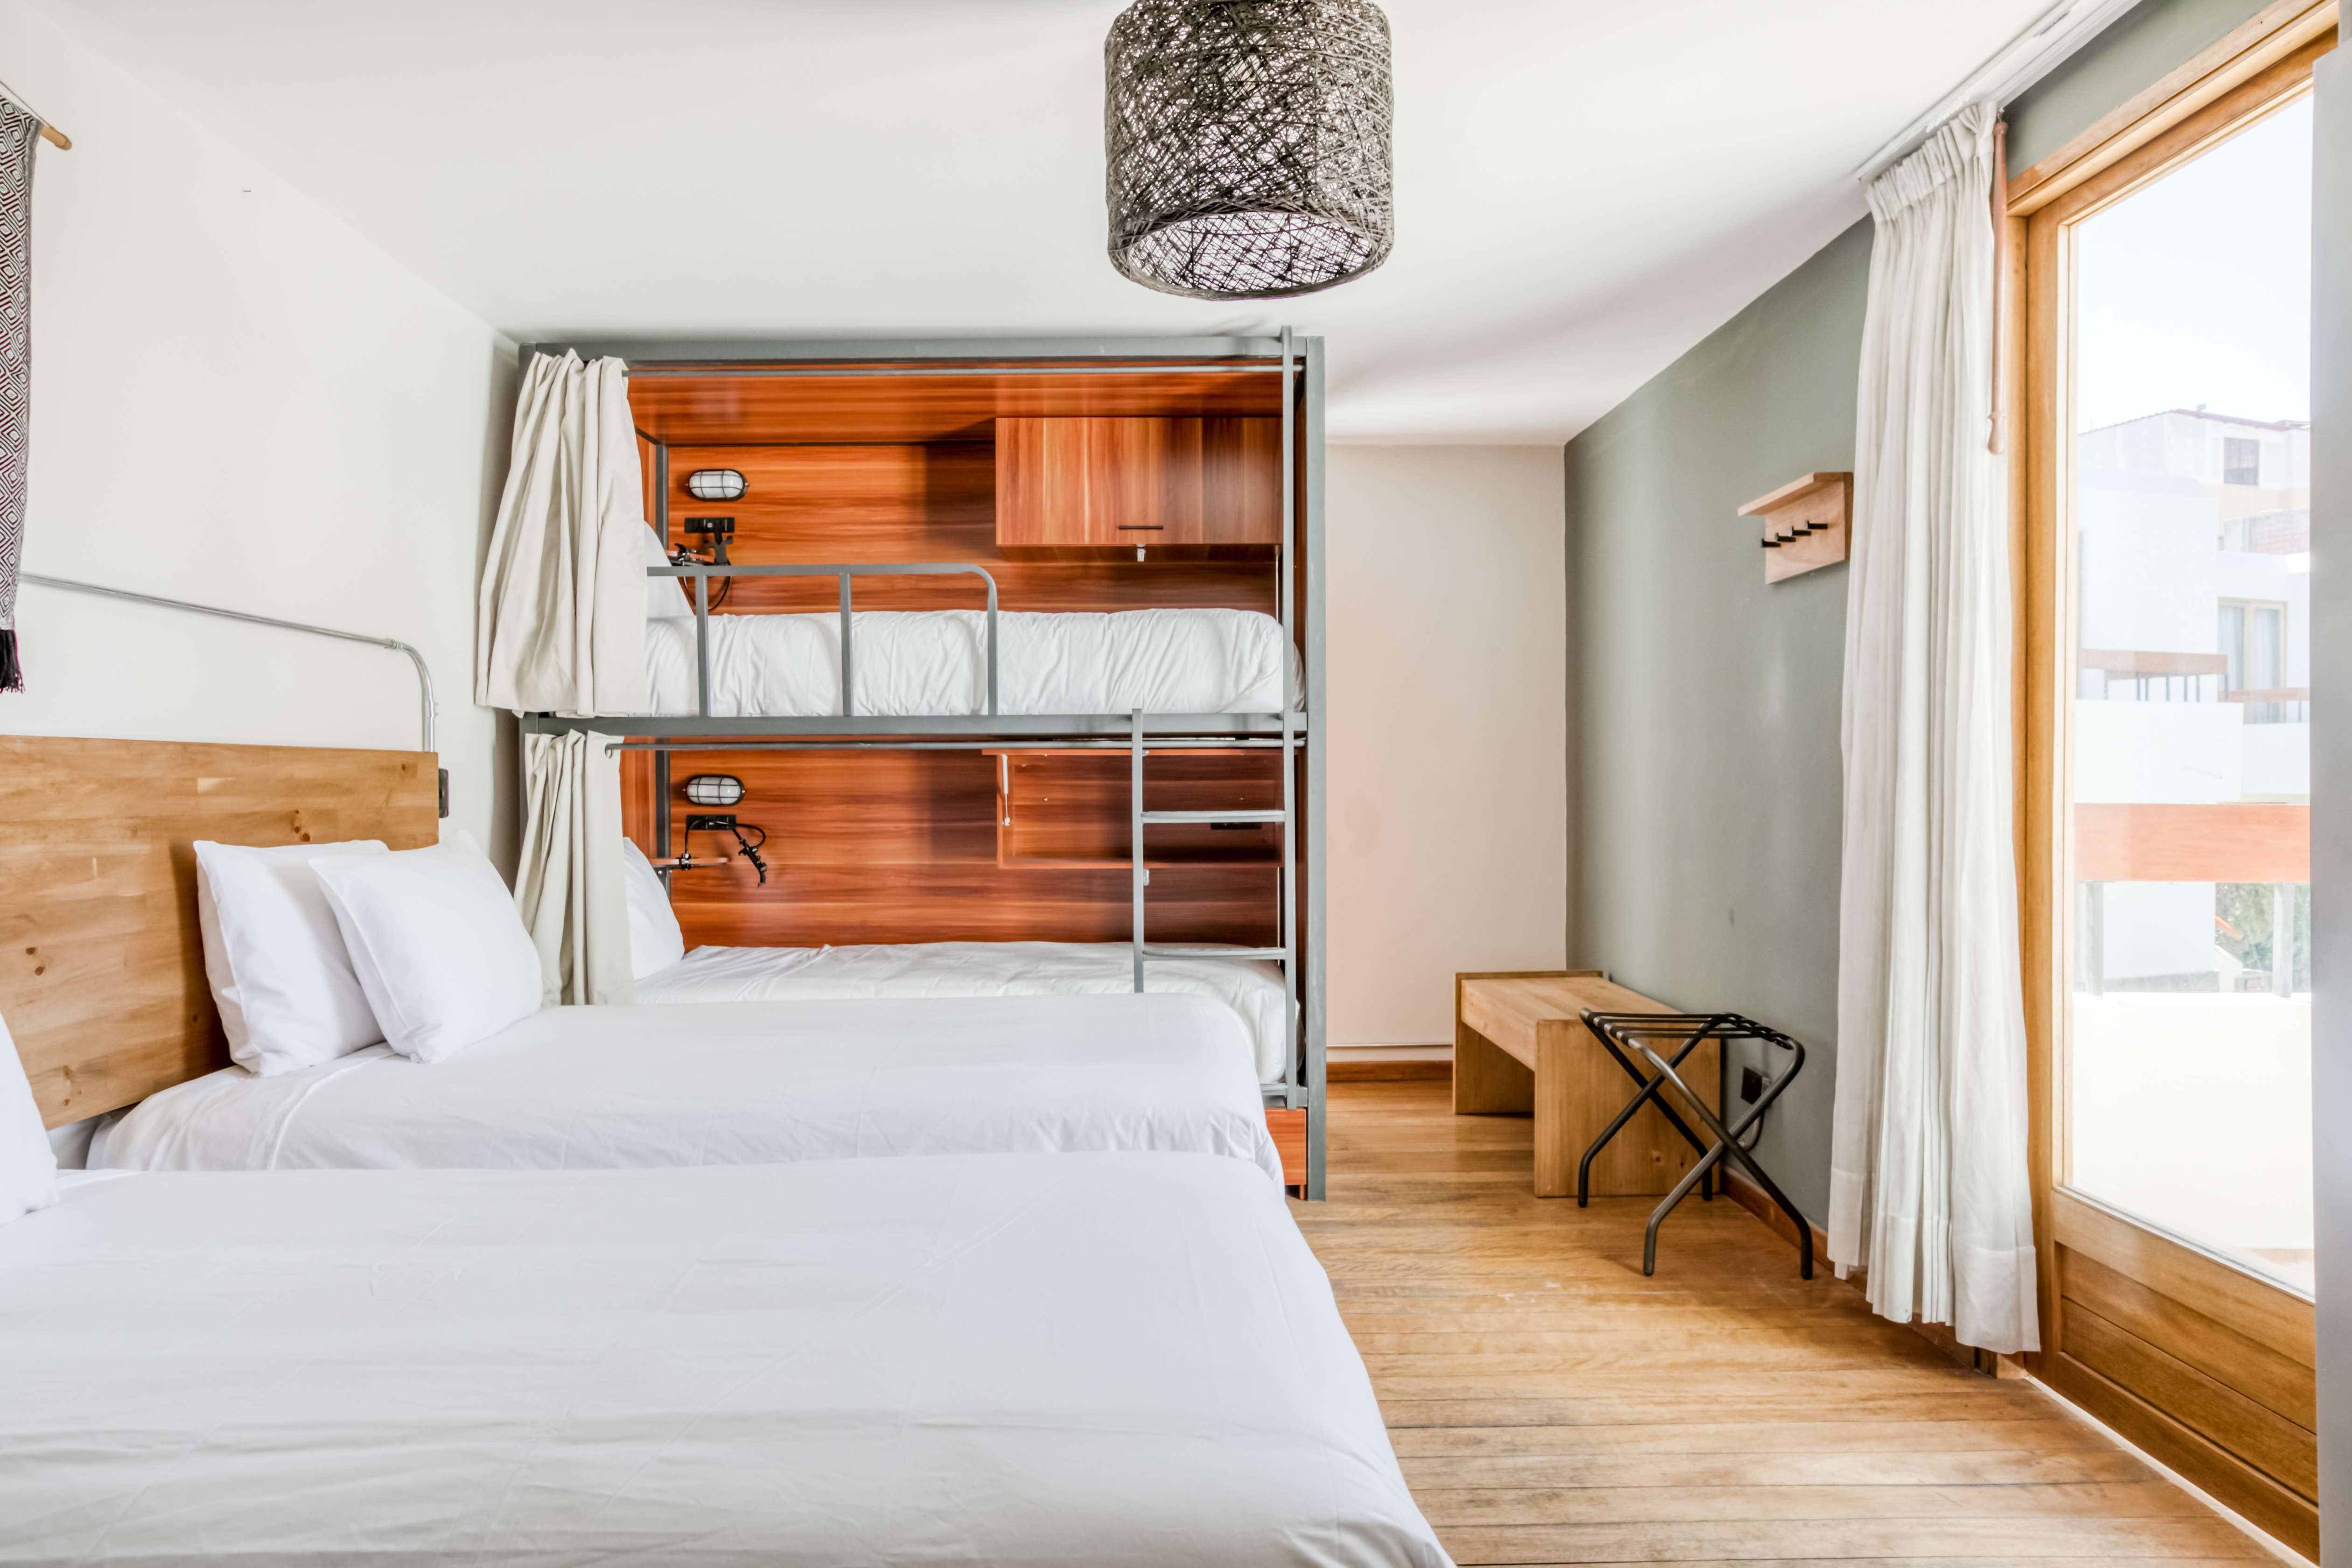 Copy of 2019-05-03-_Selina_Arequipa_Rooms_Hibryd Dorm4_003